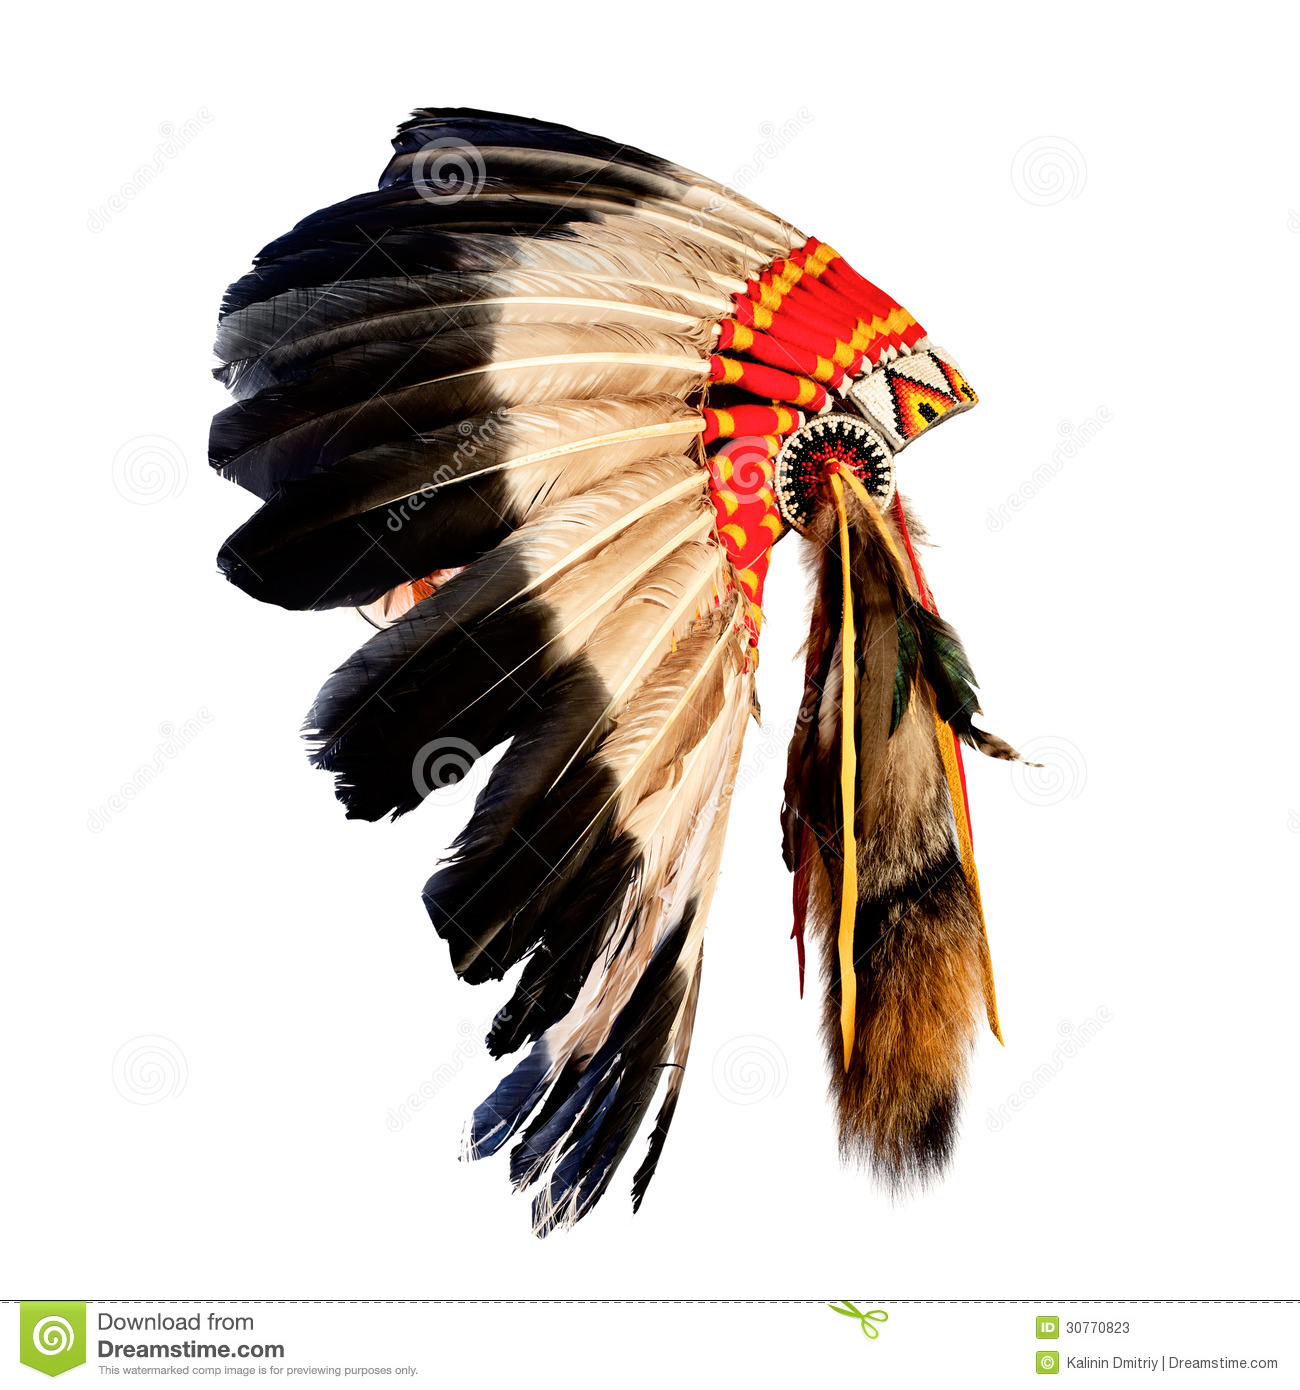 Headdress clipart indian feather Indian Chief Headdress (61+) chief